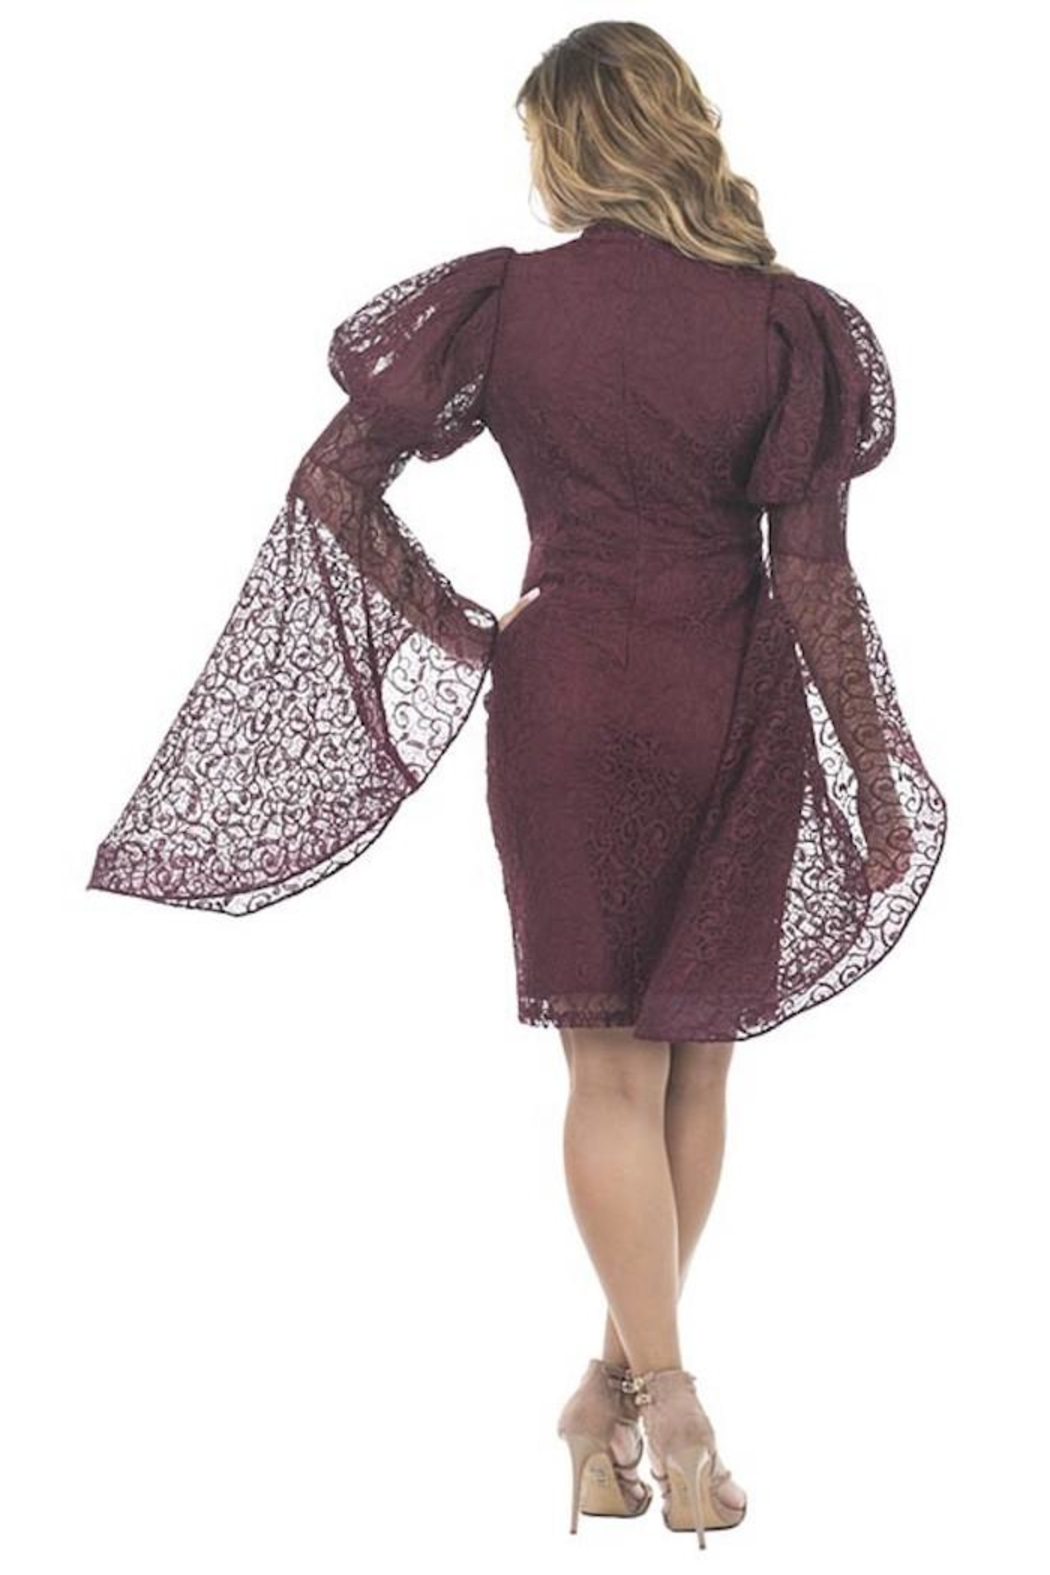 cq by cq Bell Sleeve Dress - Front Full Image